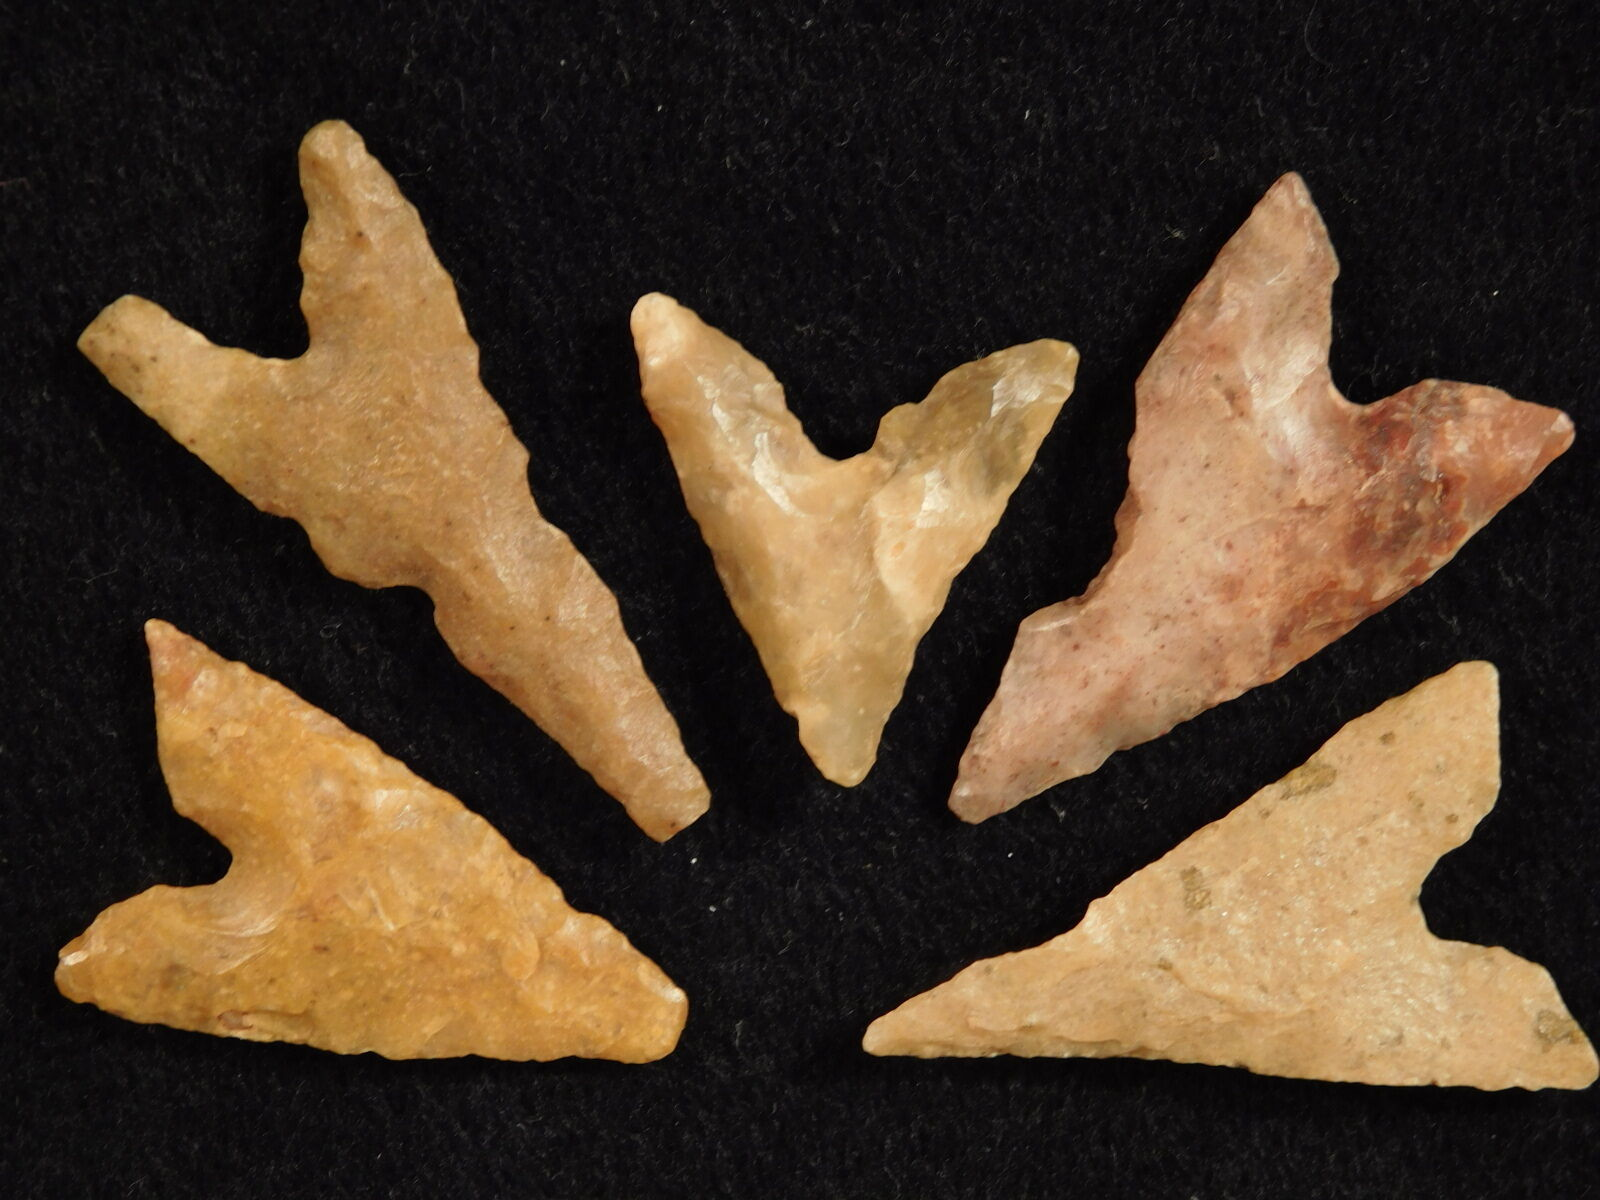 Lot of Small Very Nice 100% Authentic Ancient North African Arrowheads! 83.76